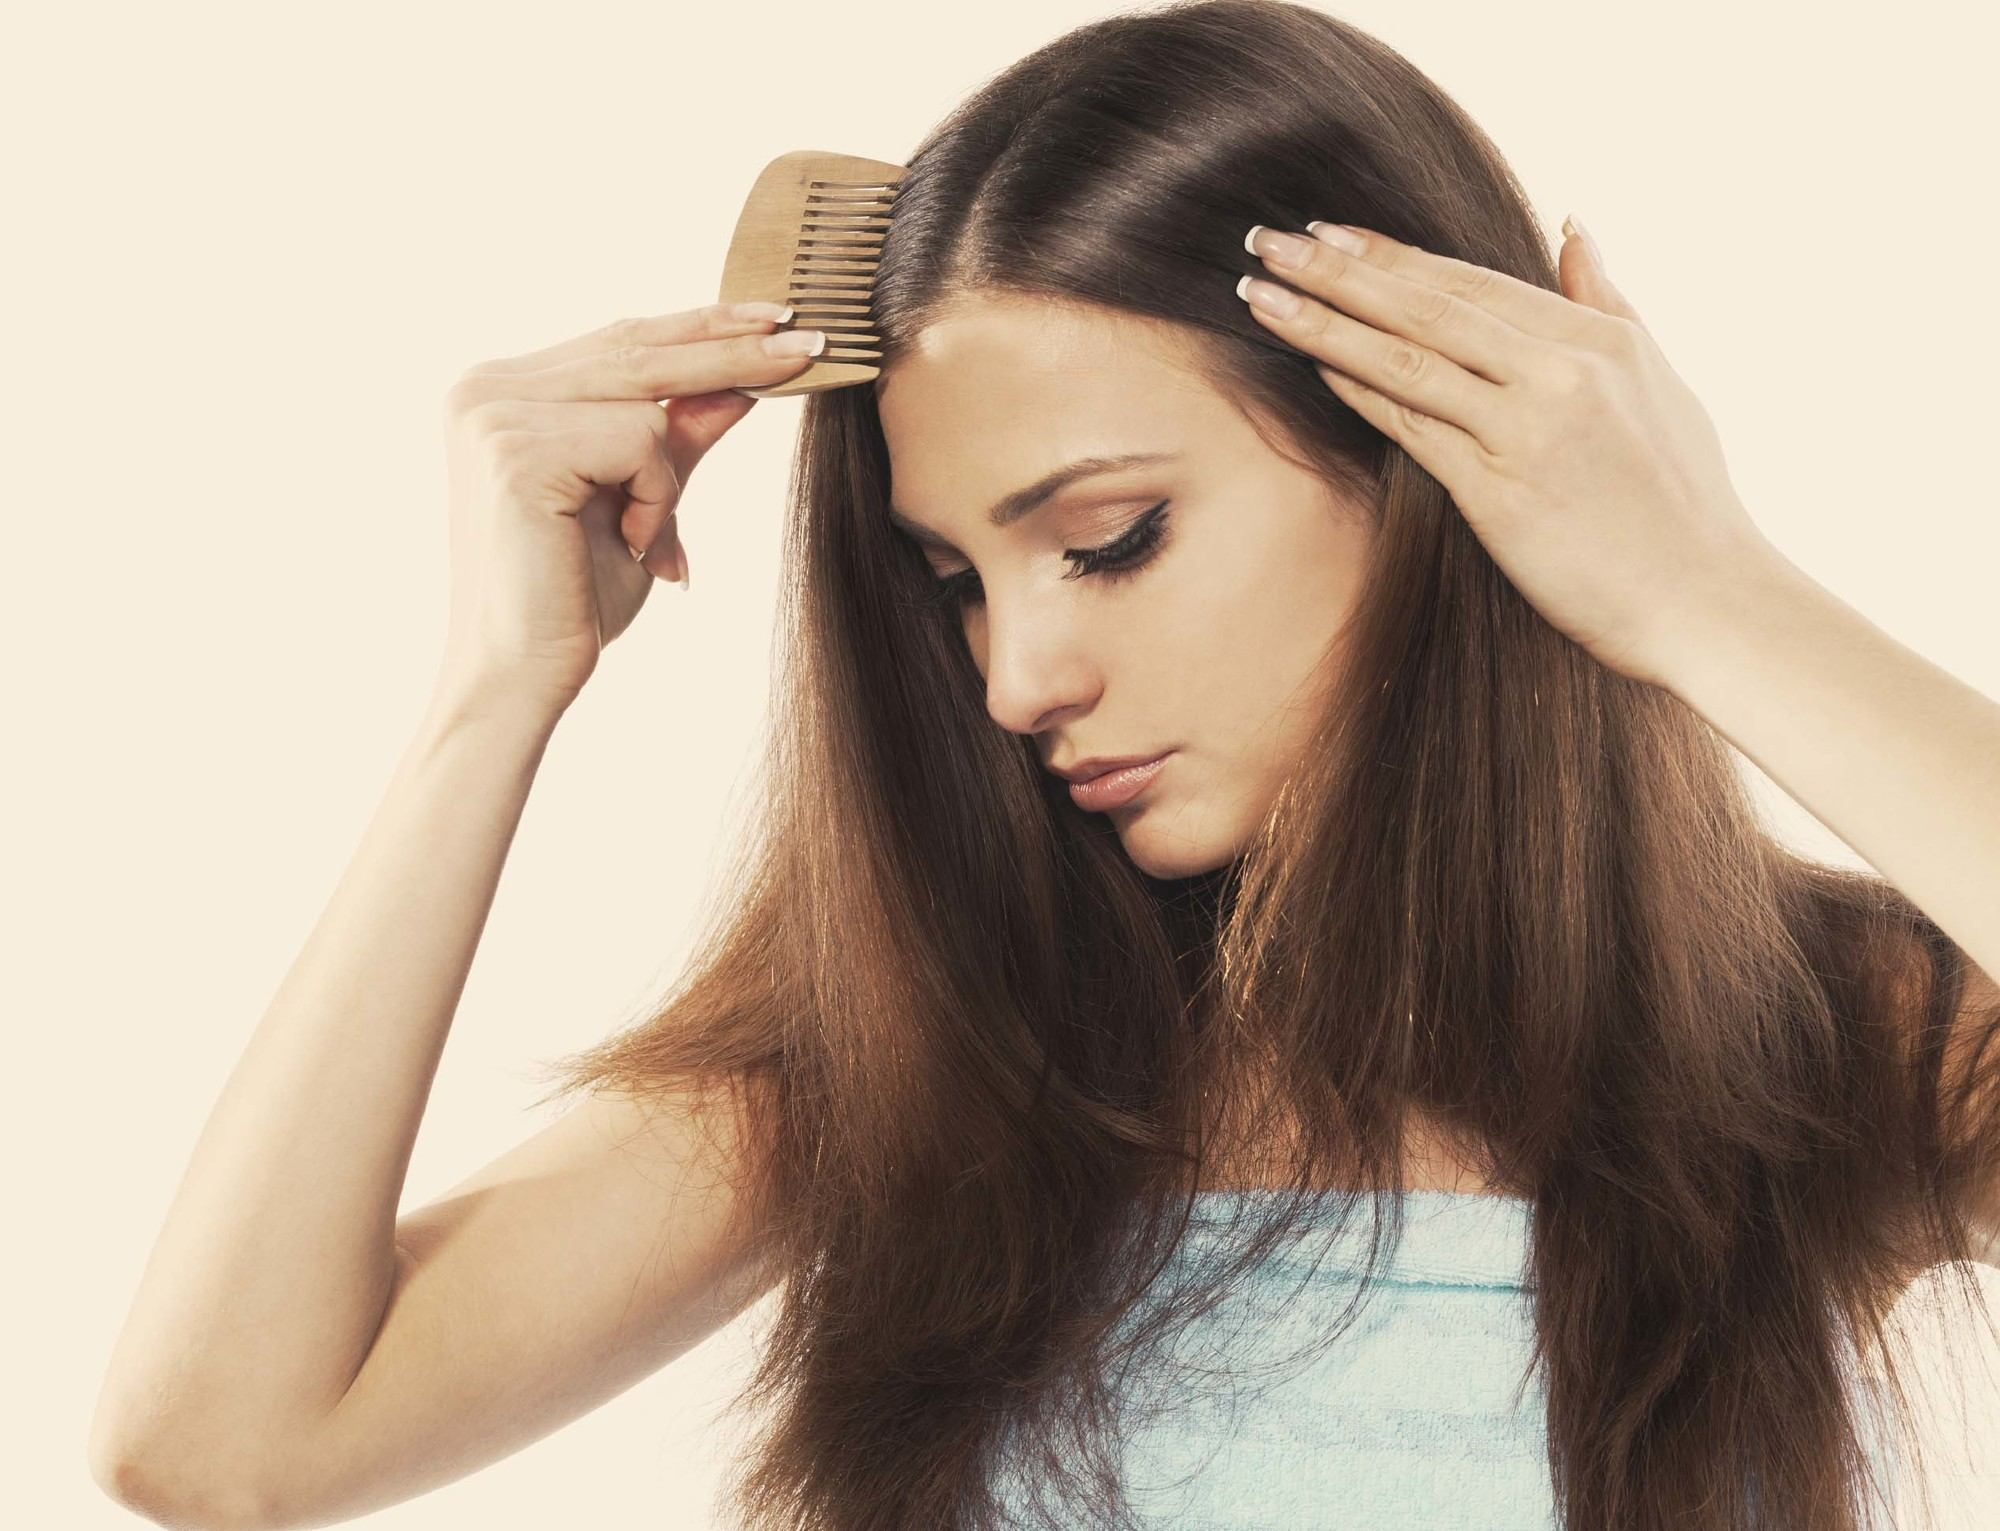 Flat hair solutions girl with long brunette hair holding a comb to her head